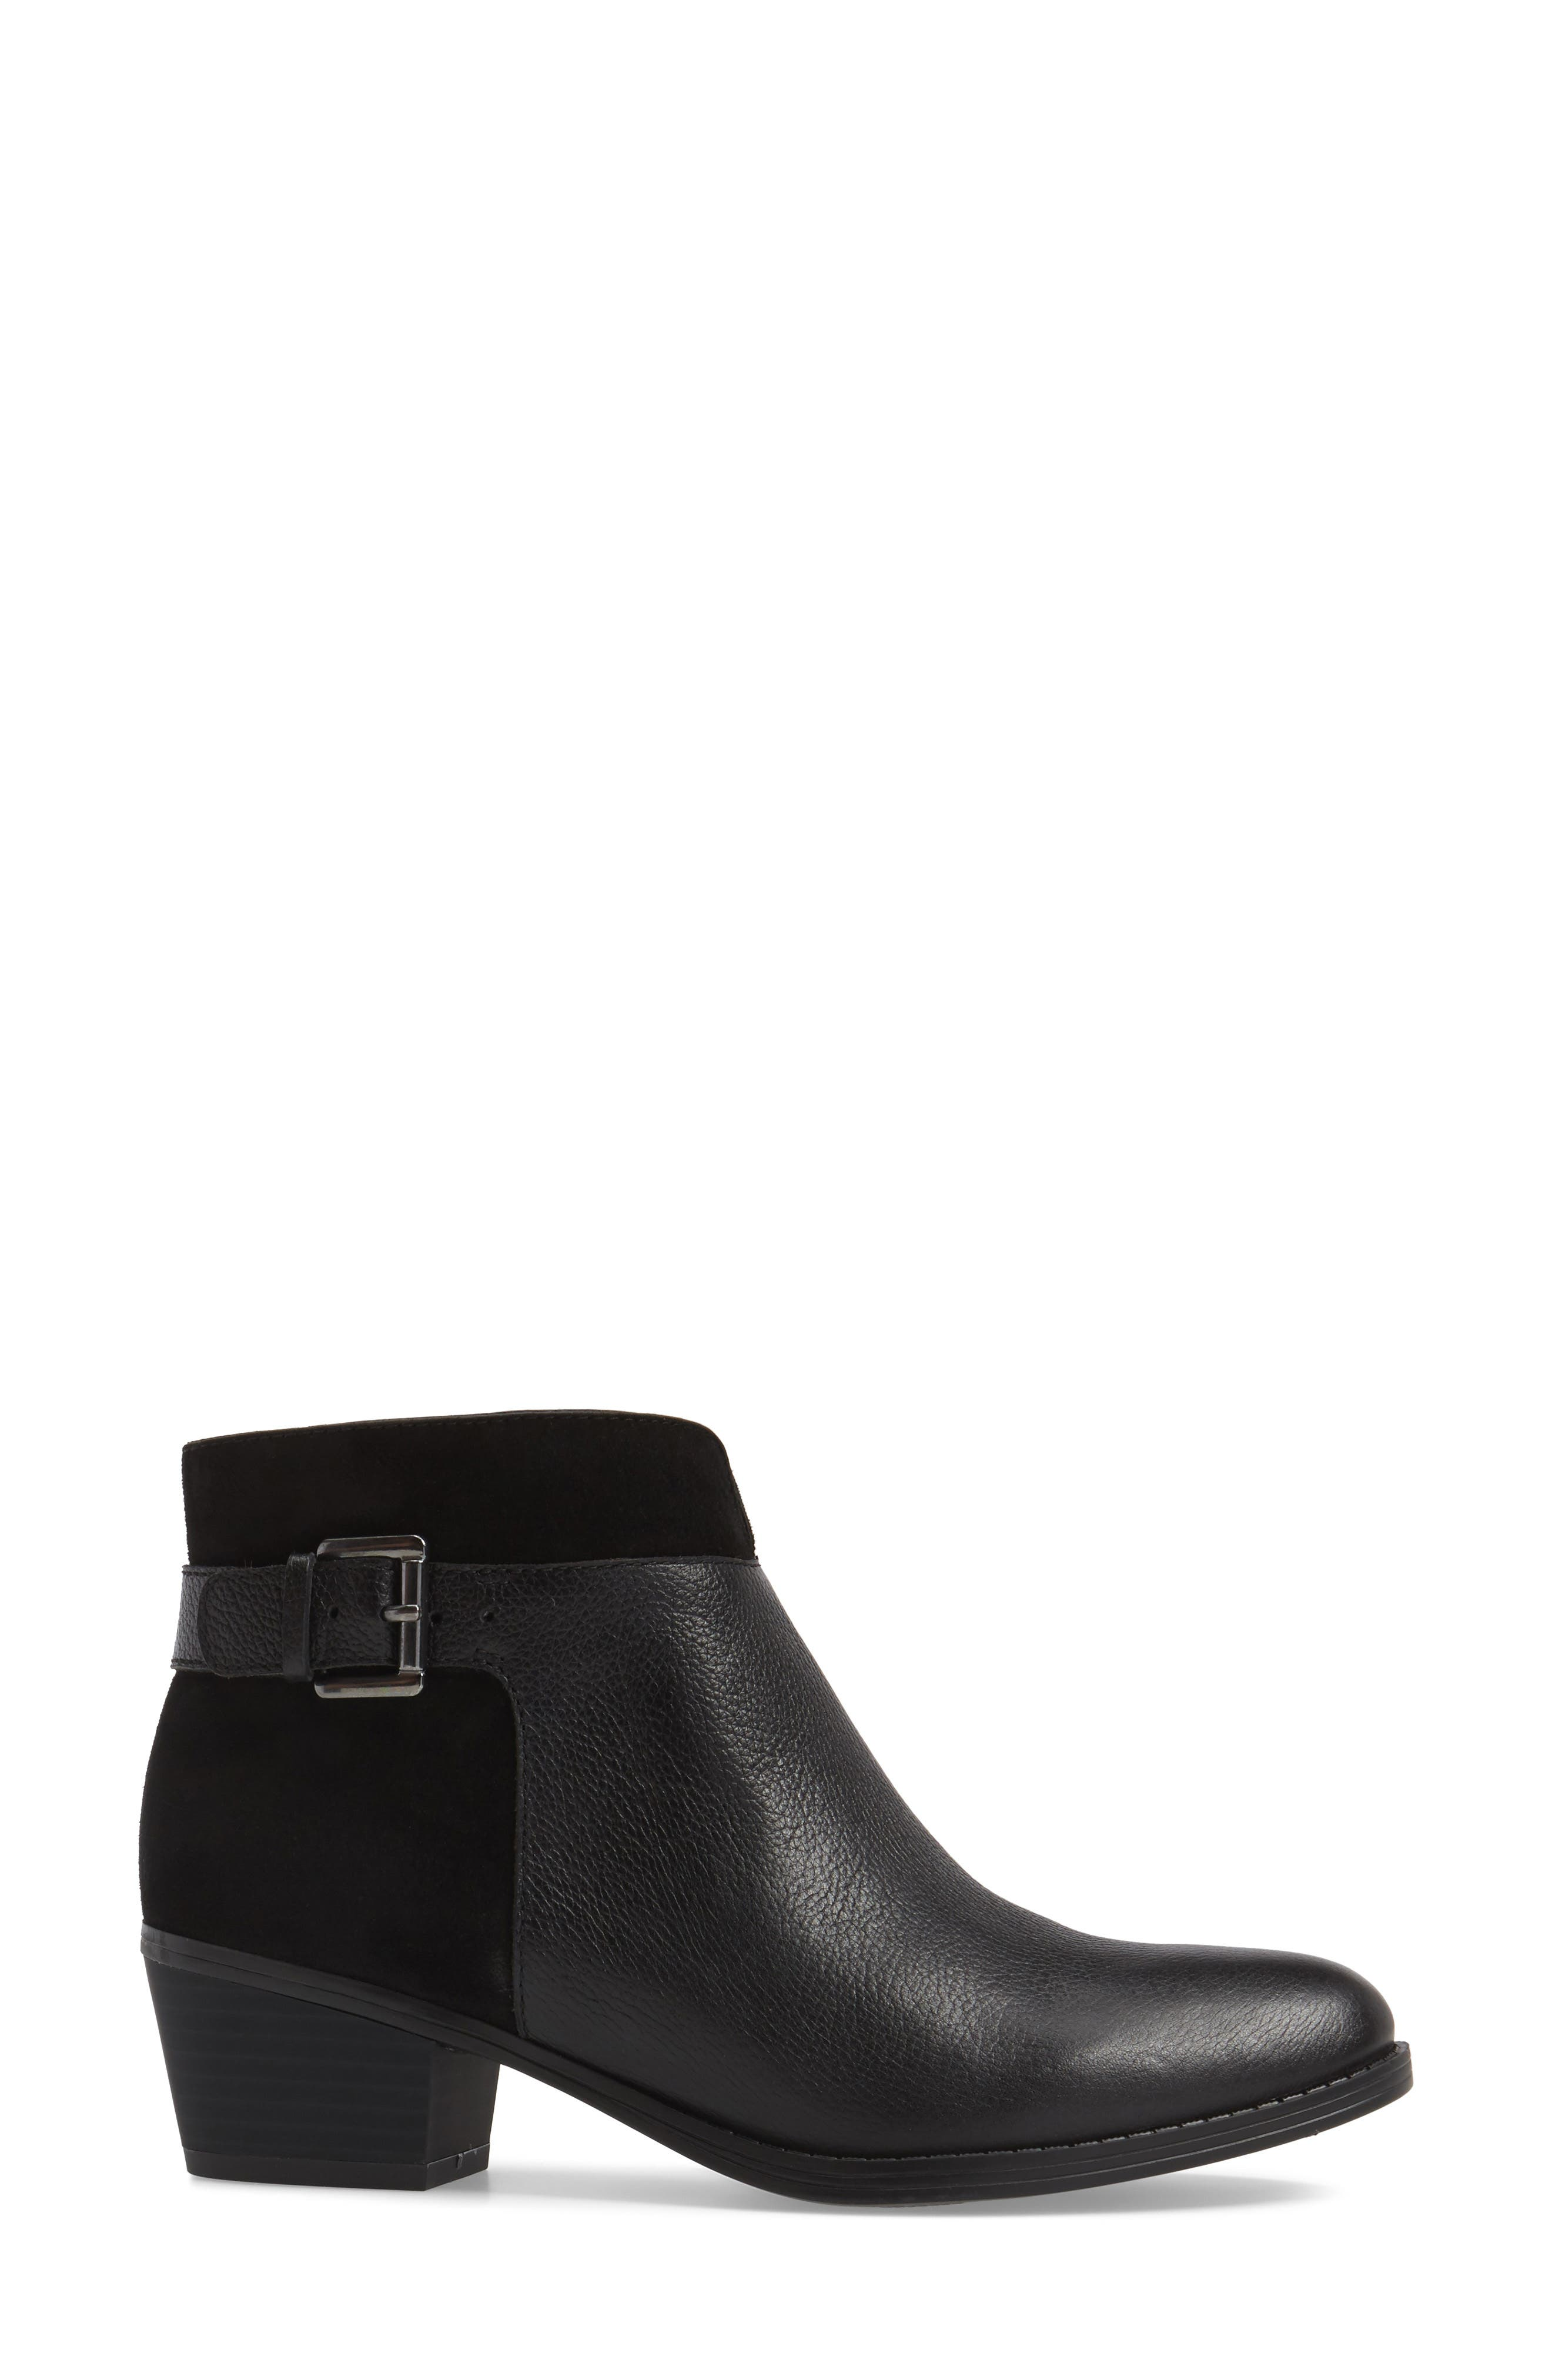 Wanya Buckle Bootie,                             Alternate thumbnail 3, color,                             Black Leather